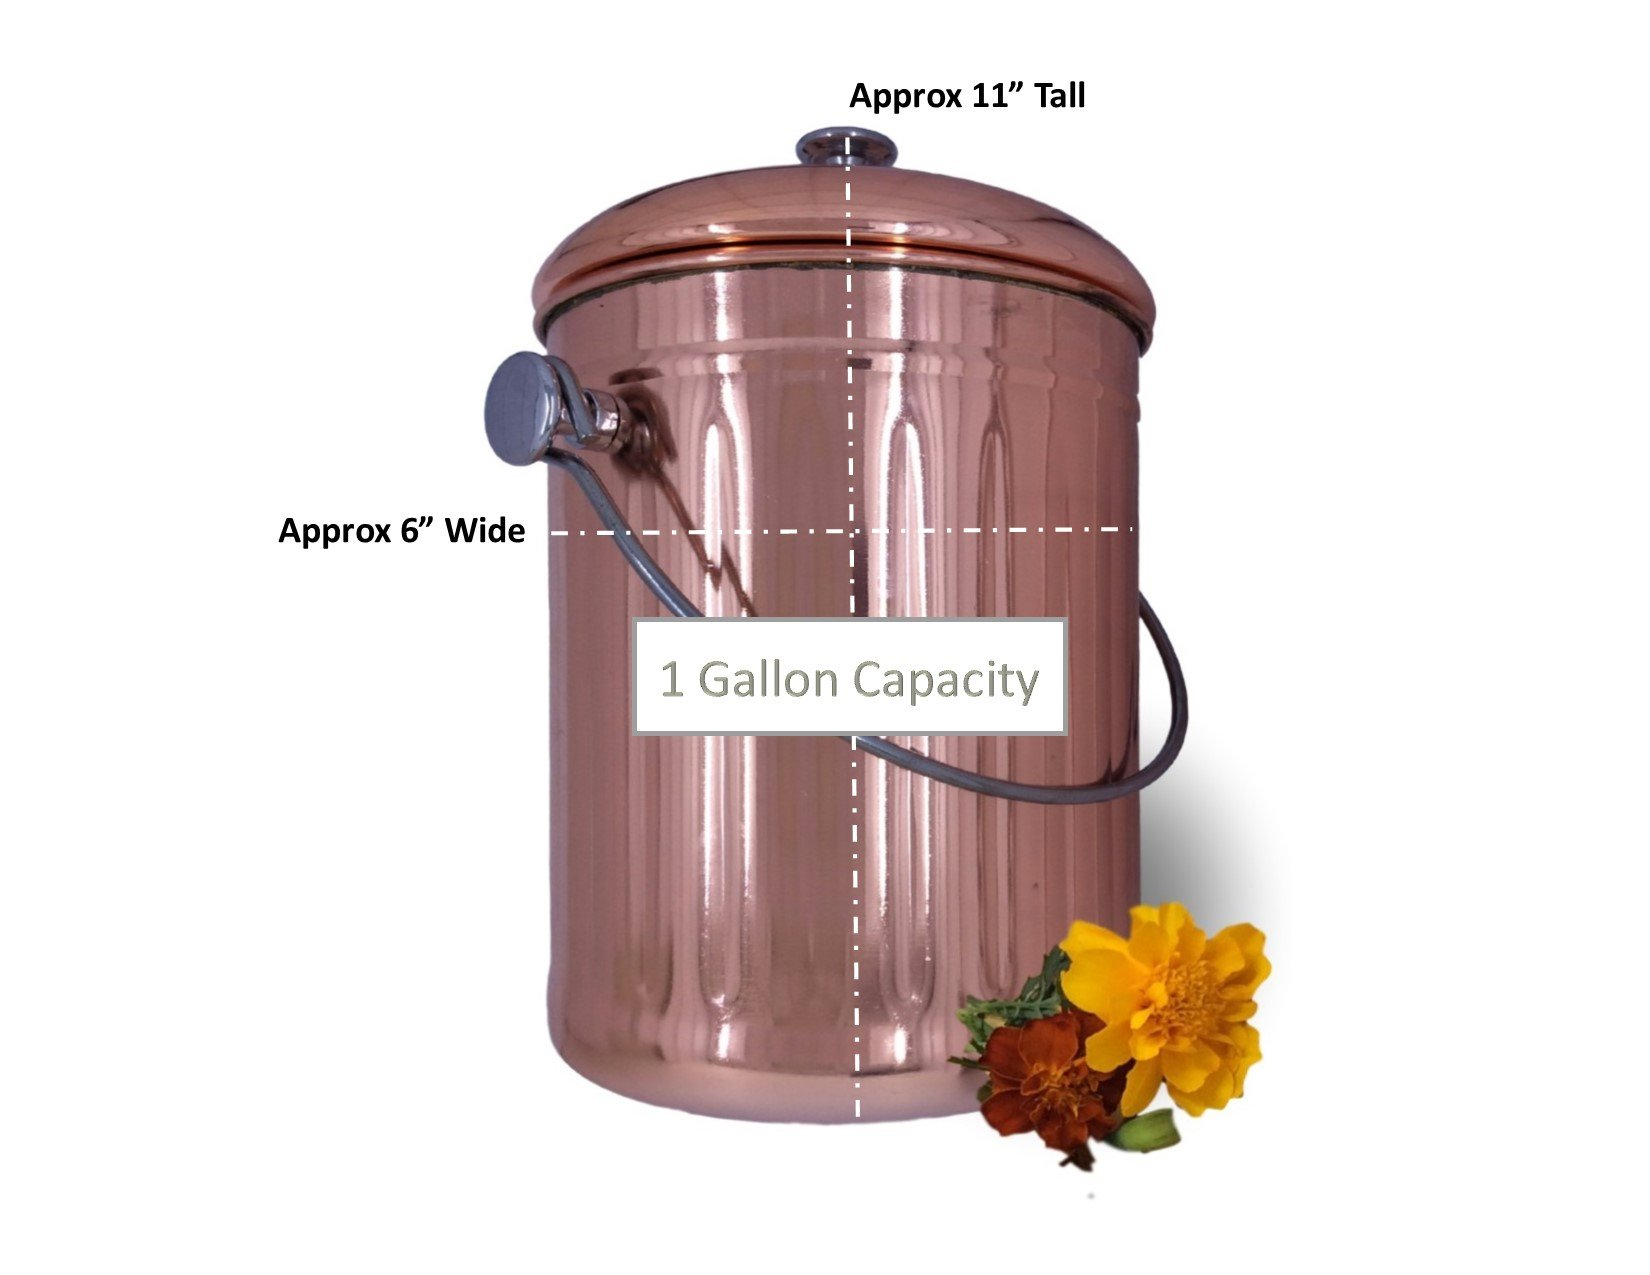 Compost Pail Bin Bucket for Indoor Kitchen Countertop - Copper Coated Stainless Steel 1 Gallon - BONUS Includes 2 Sets of Dual Charcoal Filters by Goldsol Brands (Image #3)